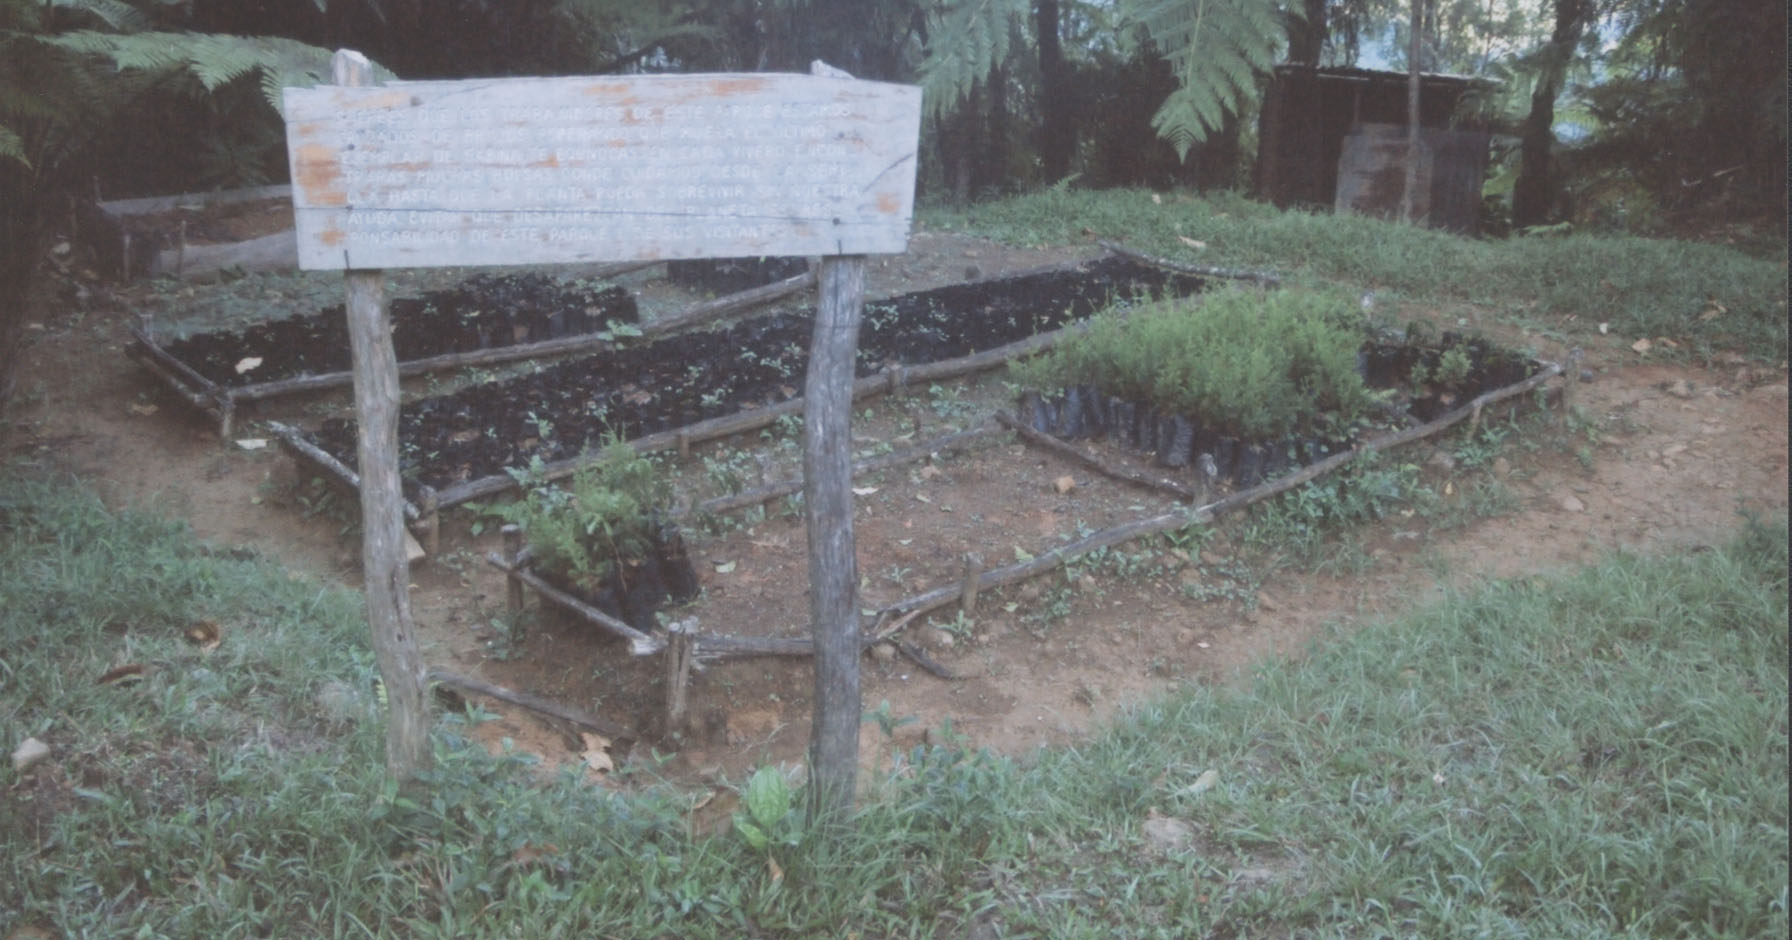 A small nursery for endangered plants, in Parque Nacional Pico Turquino